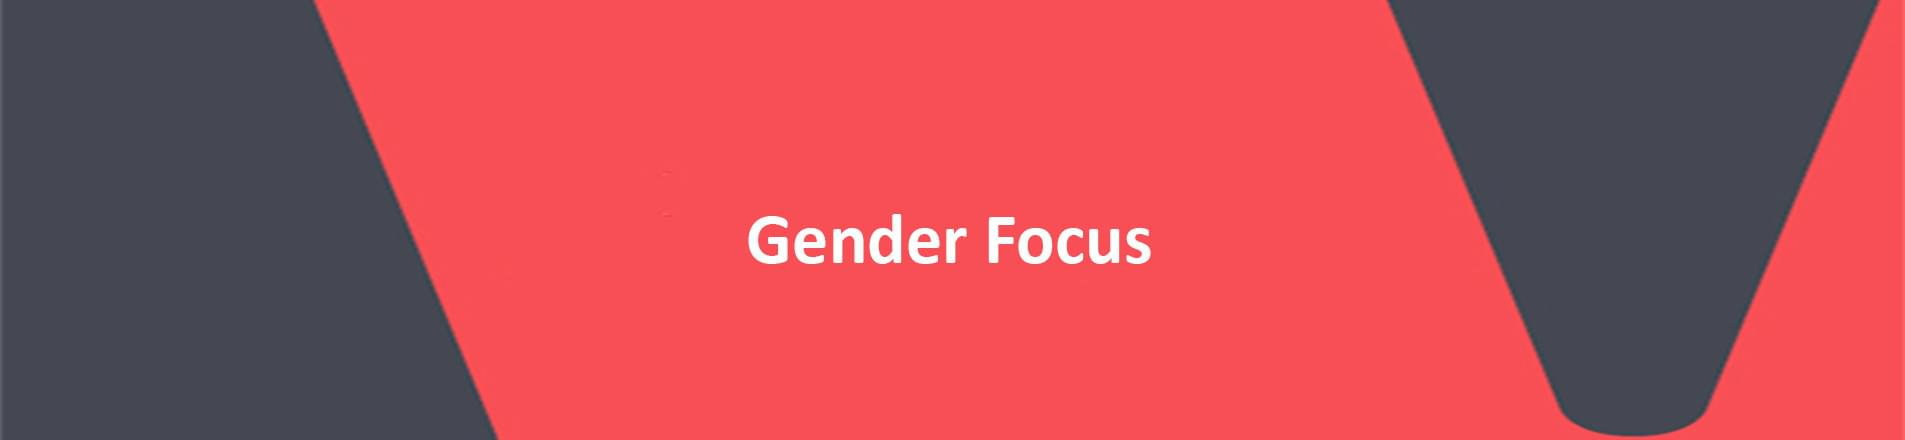 The title 'Gender Focus' on the red vercida background.